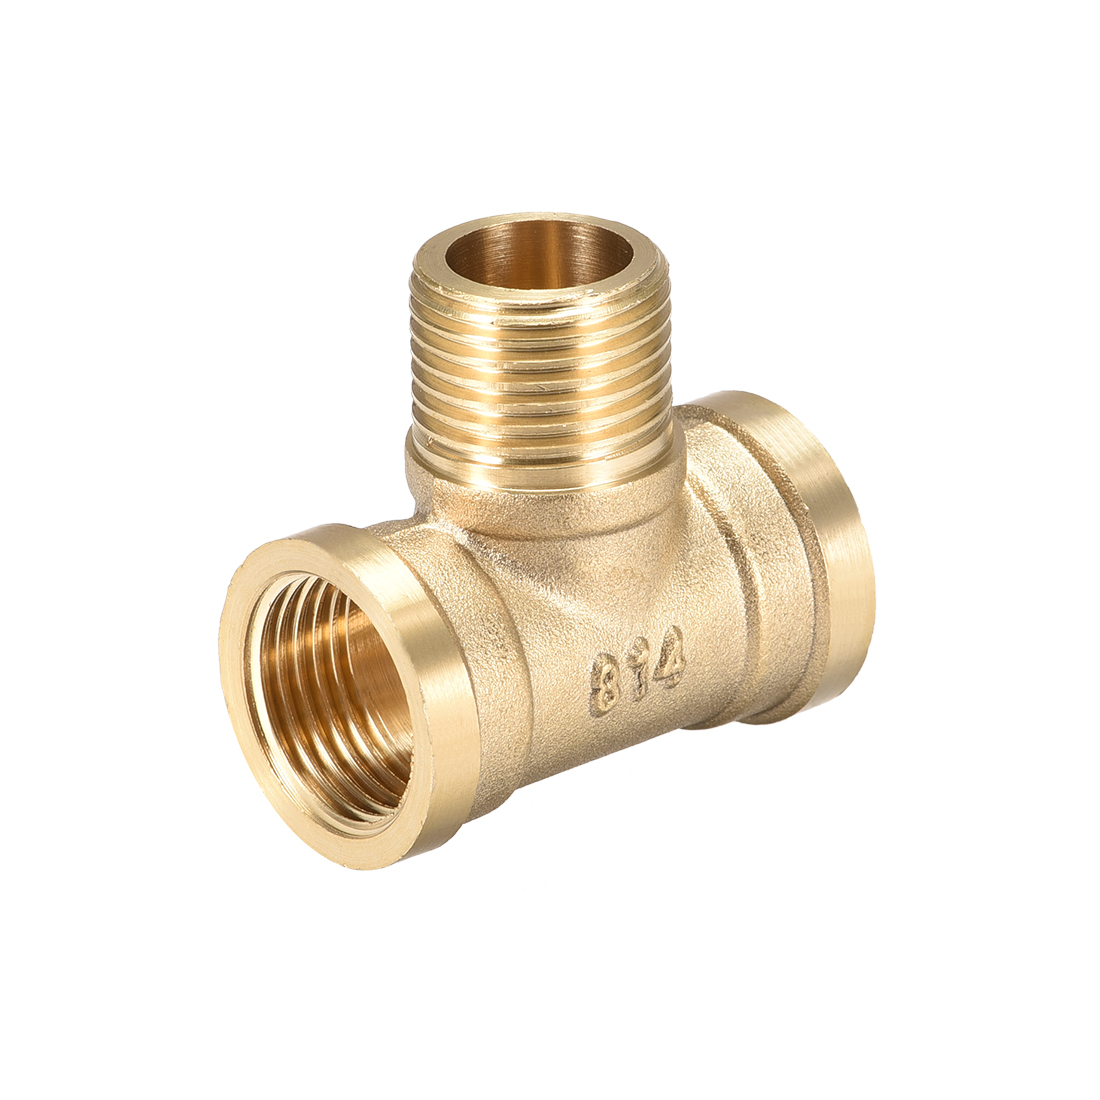 Brass Tee Pipe Fitting G1/2 Female x G1/2 Male x G1/2 Female T Shaped Connector